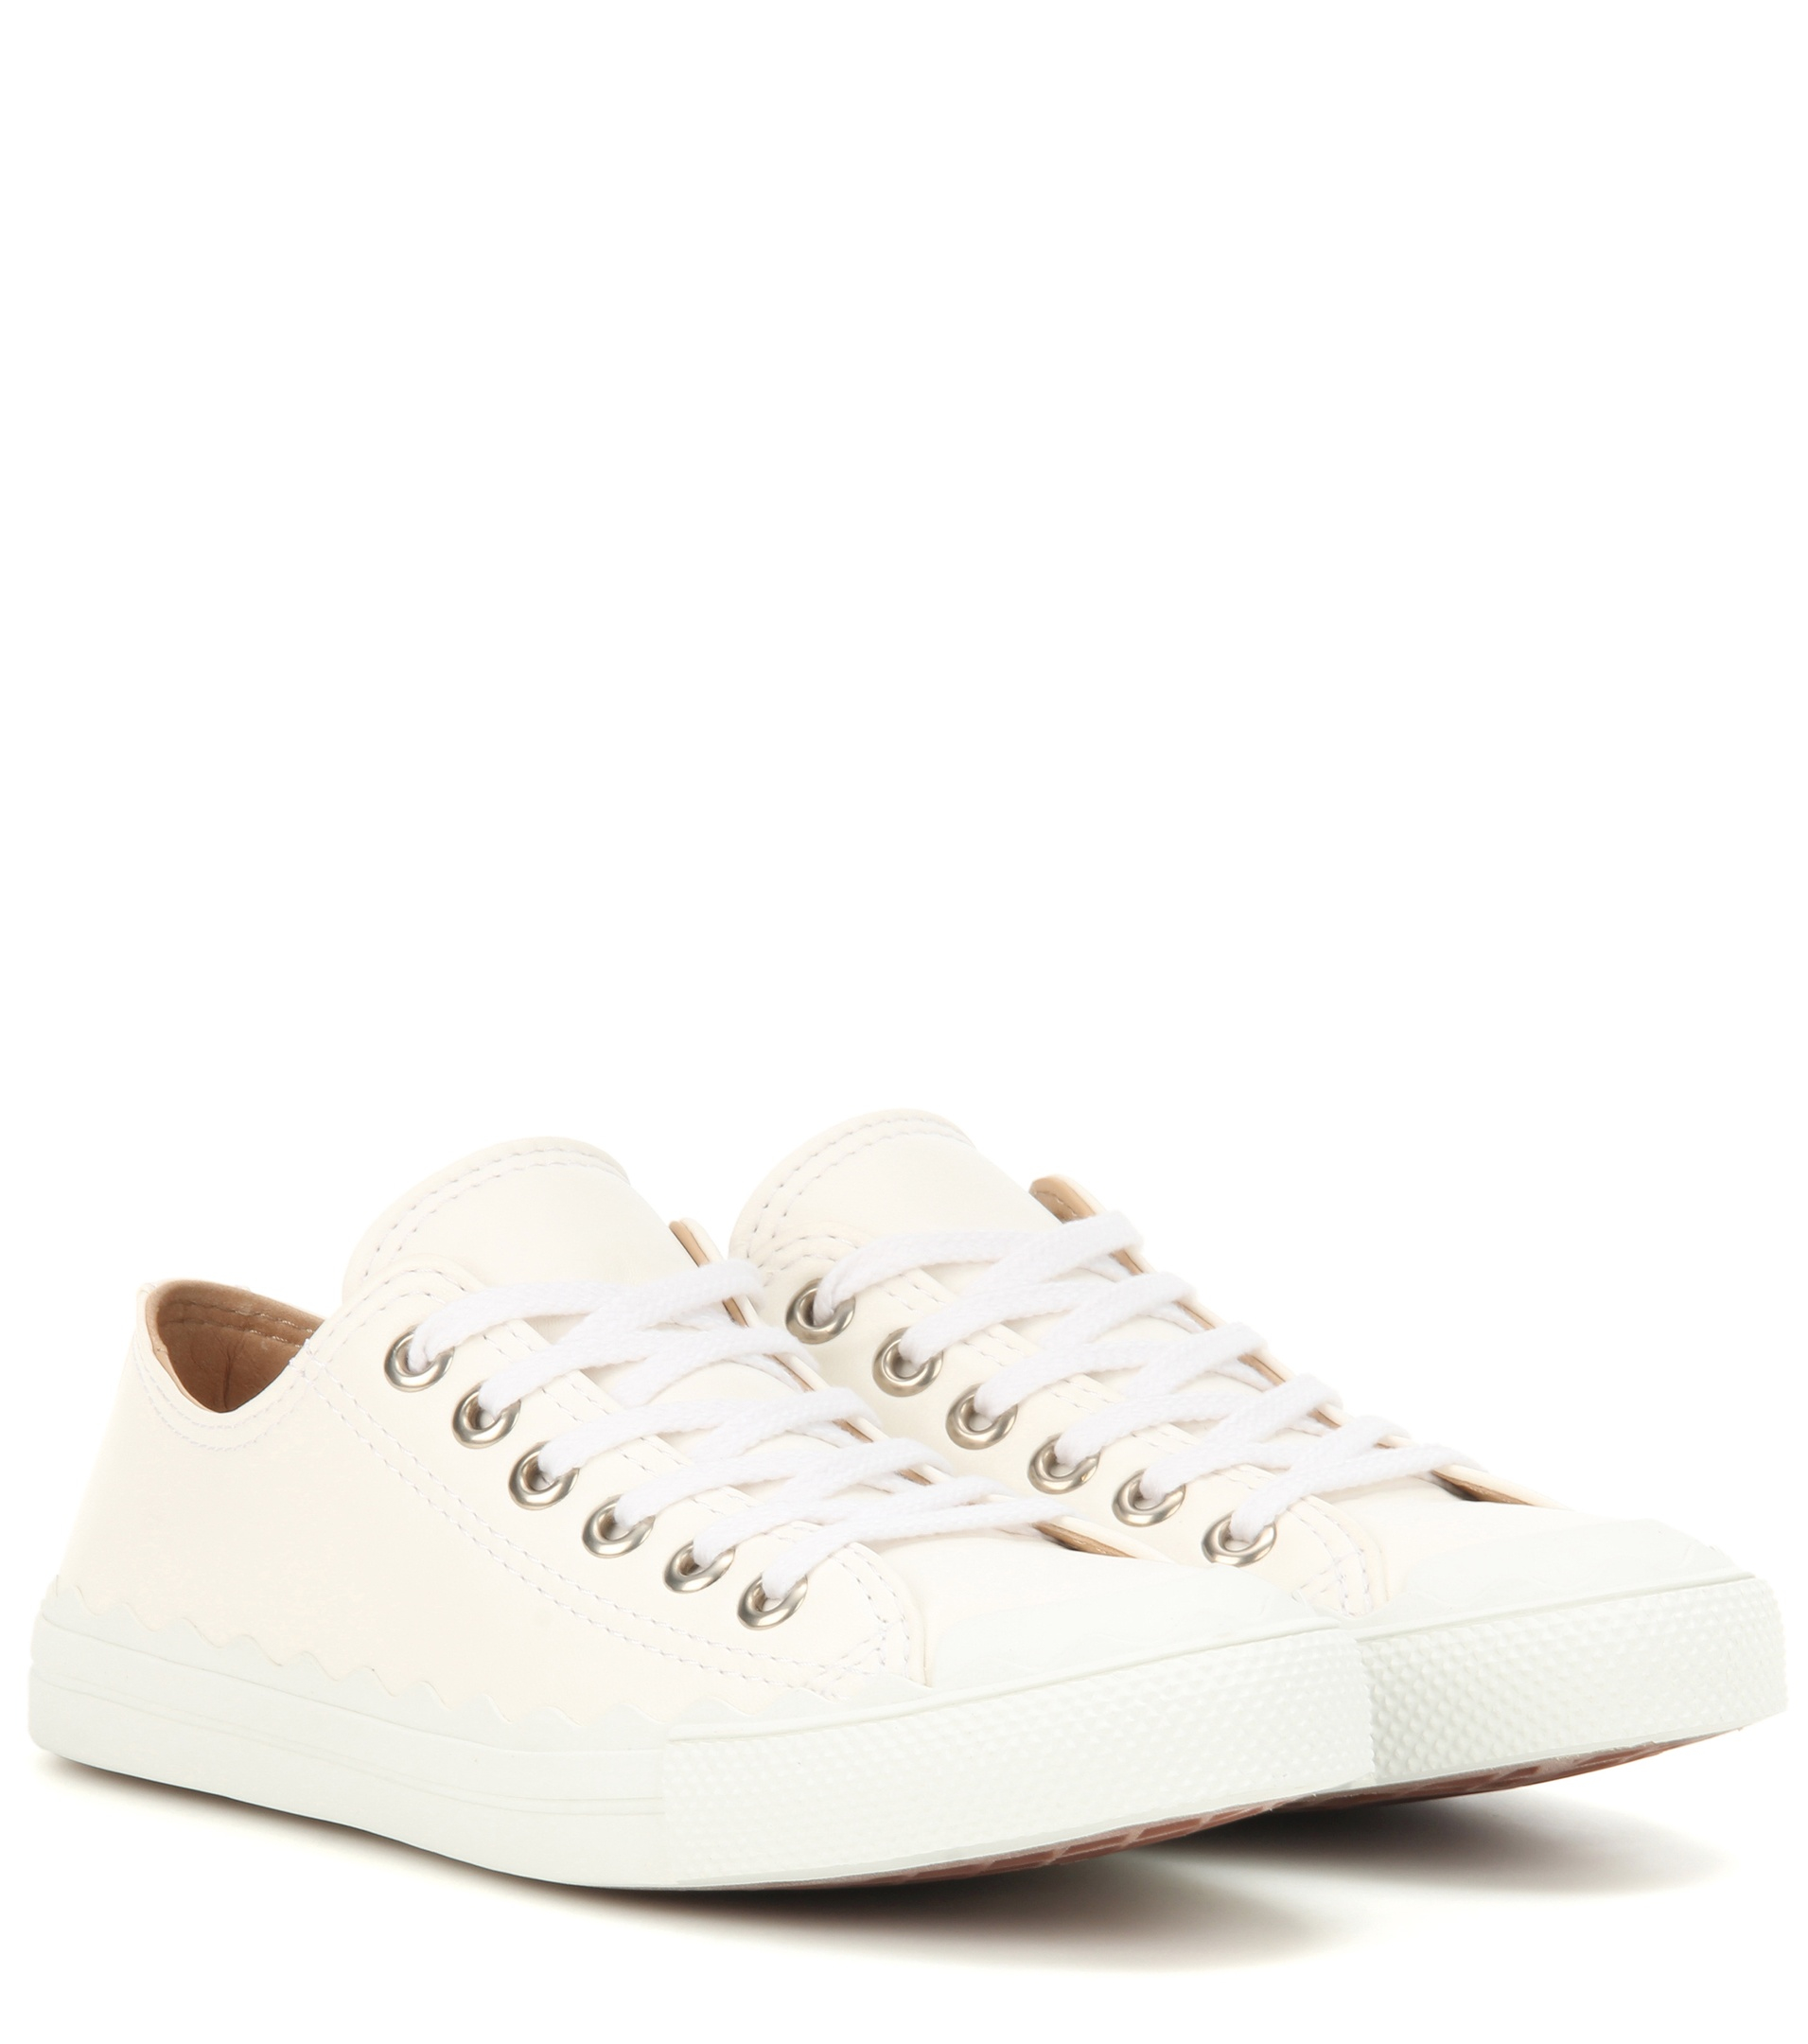 chlo lauren leather sneakers in white lyst. Black Bedroom Furniture Sets. Home Design Ideas